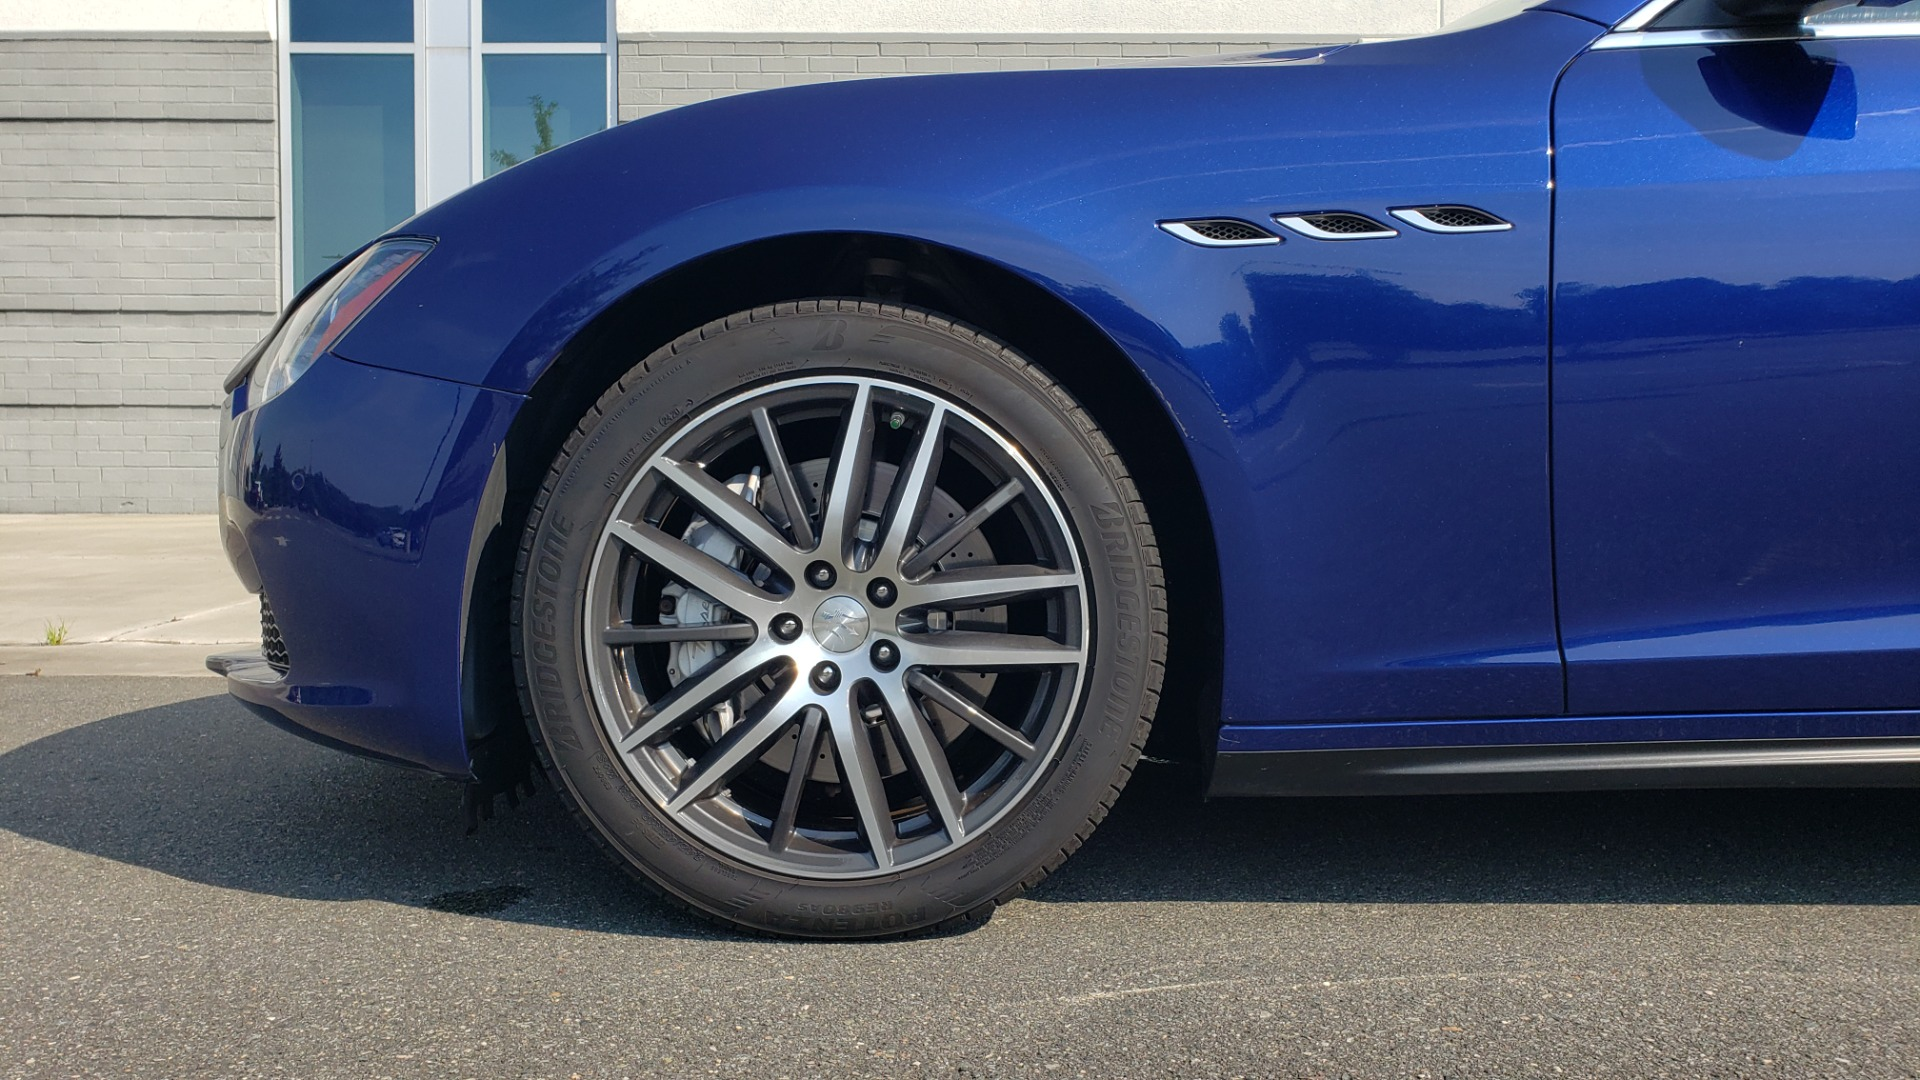 Used 2015 Maserati GHIBLI SEDAN / 3.0L V6 / 8-SPD AUTO / NAV / HTD STS / SUNROOF / REARVIEW for sale $24,495 at Formula Imports in Charlotte NC 28227 82